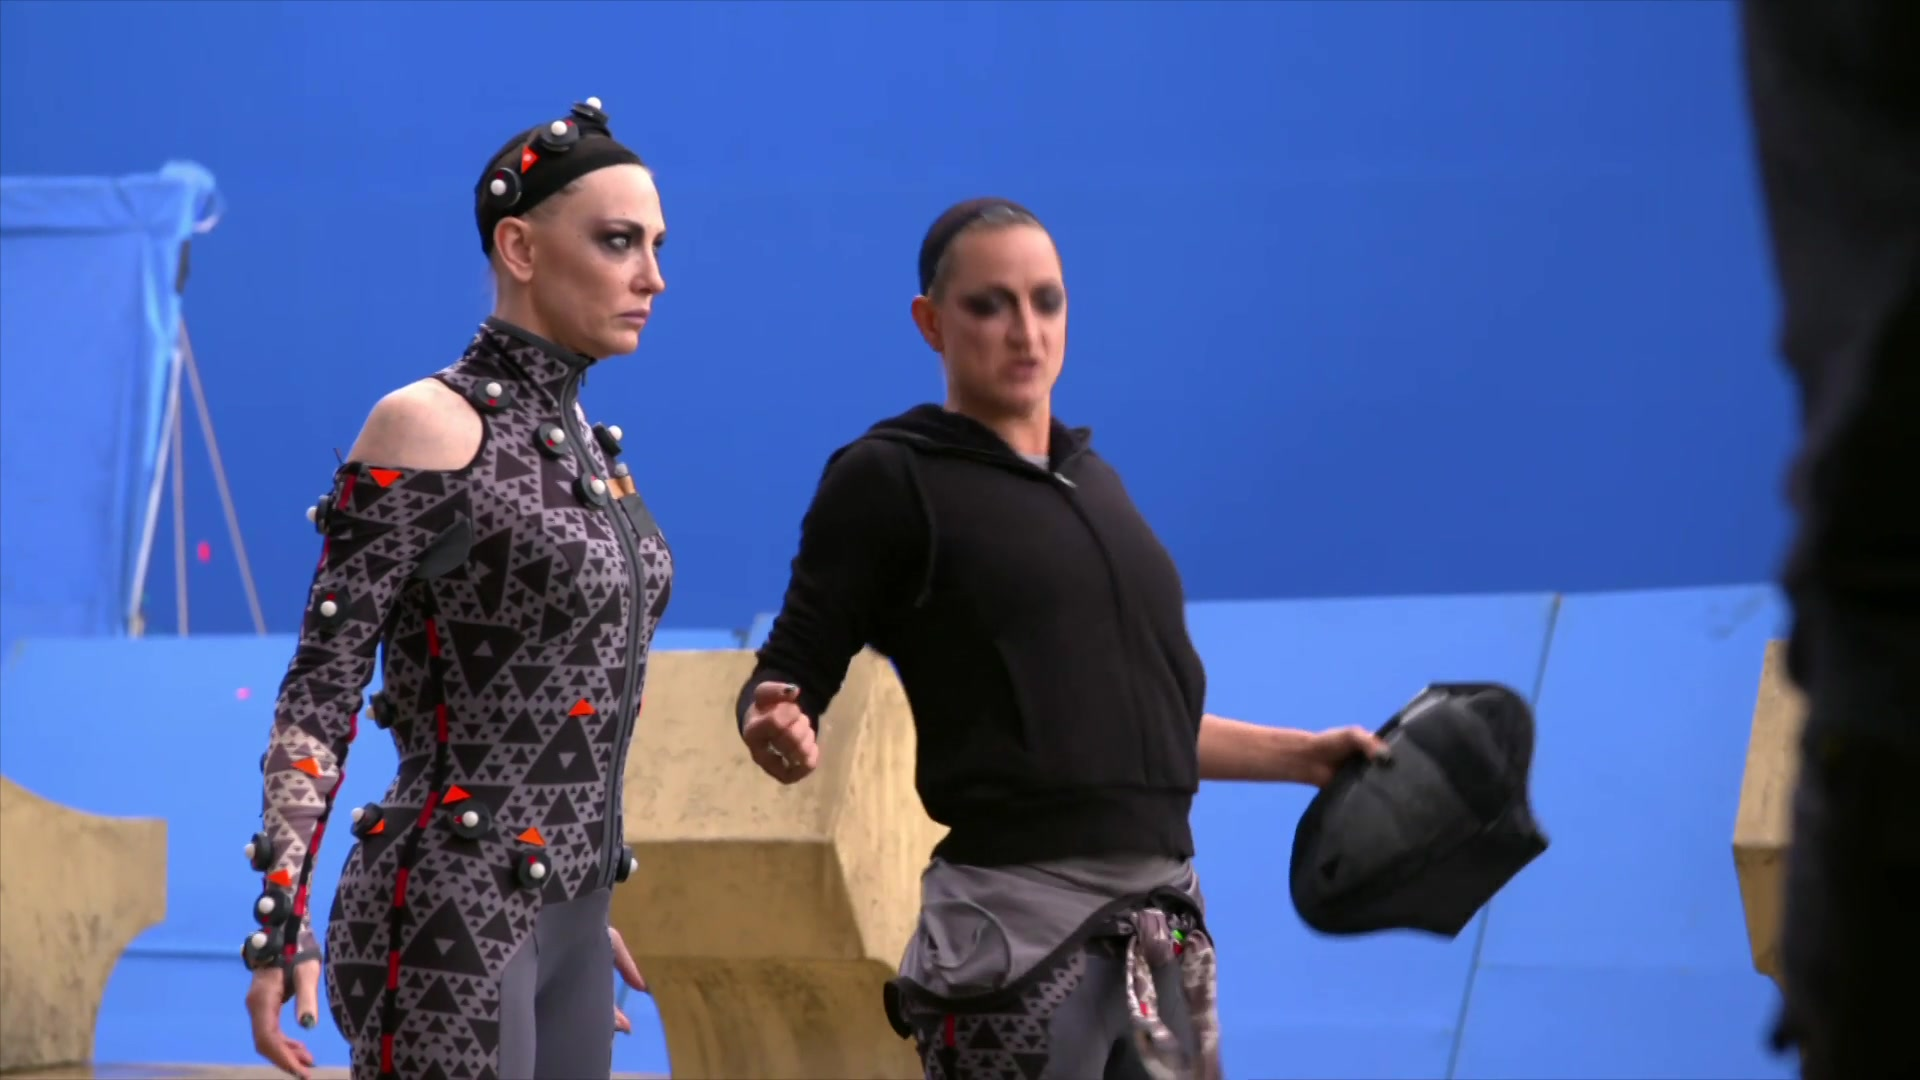 Thor: Ragnarok Inside Filming with Villainess Hela + More Behind the Scenes